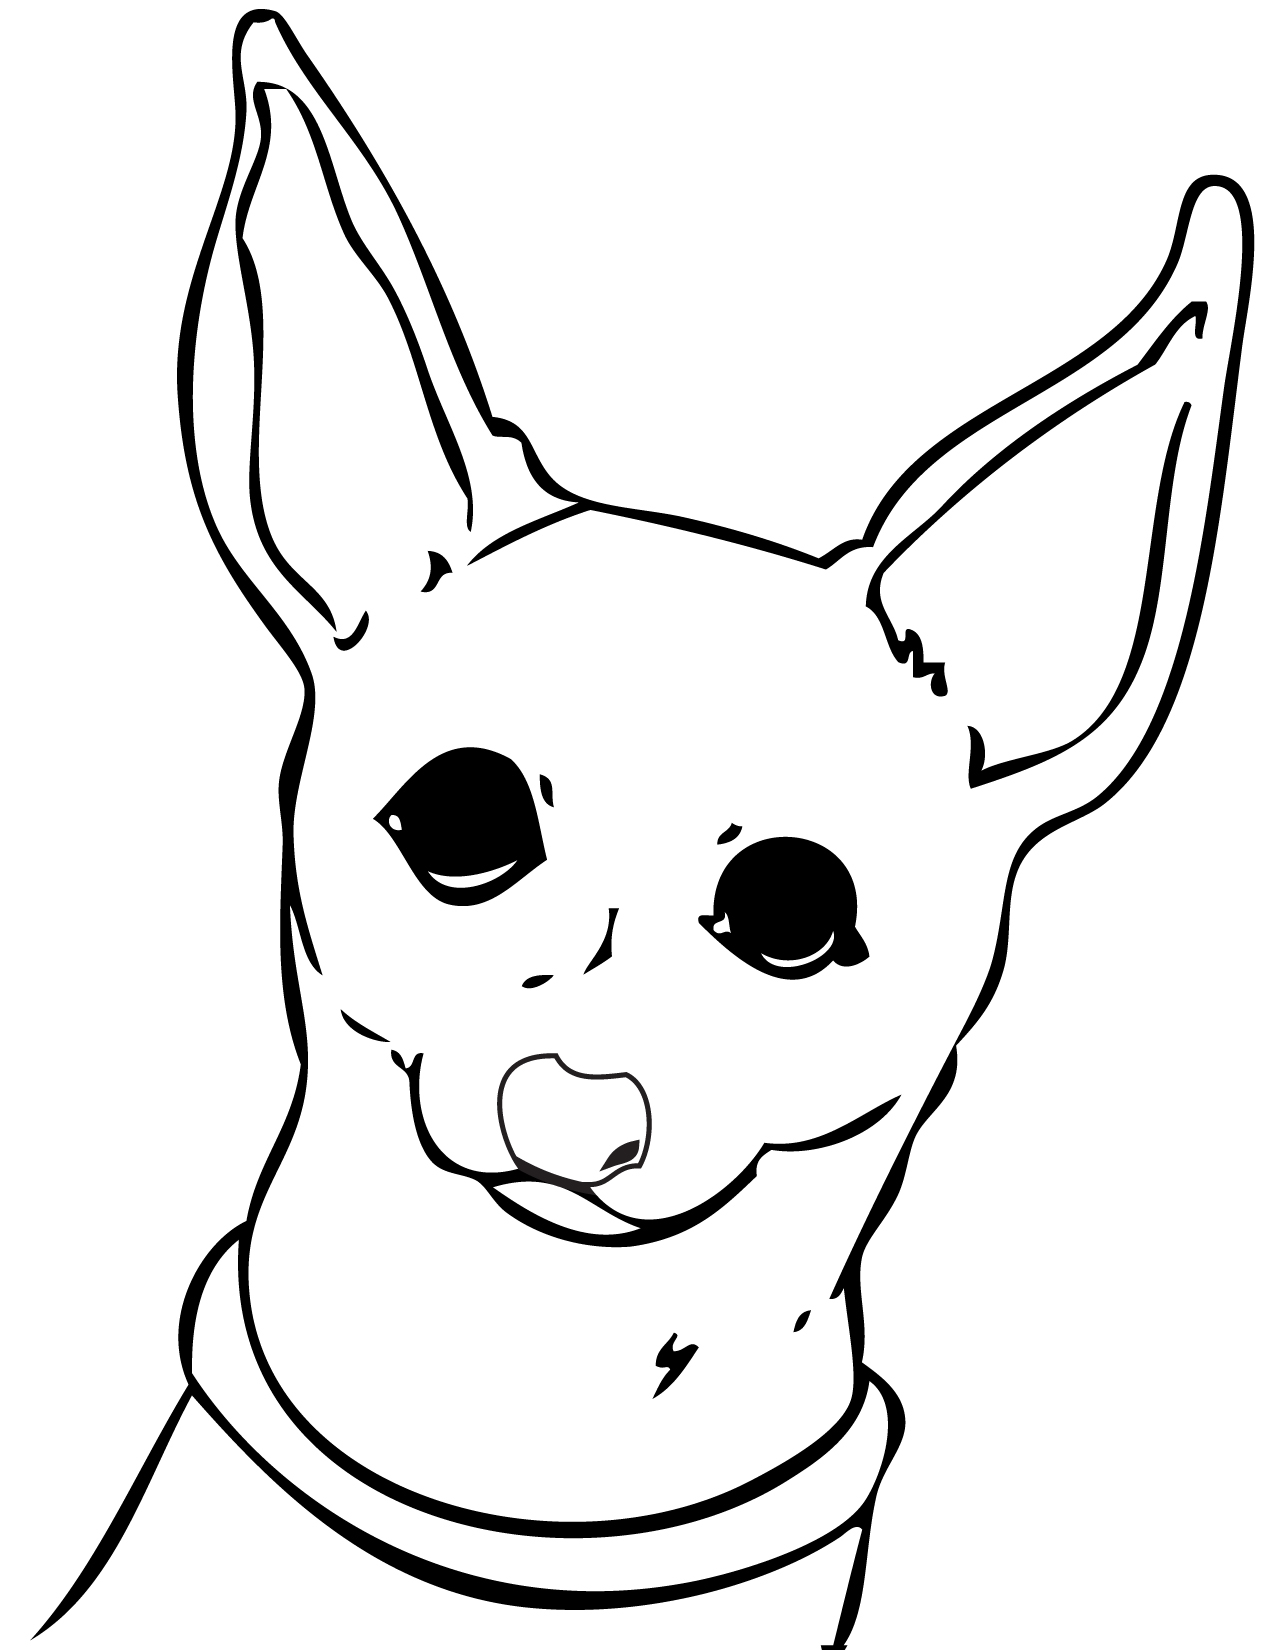 printable kitten coloring pages - chihuahua